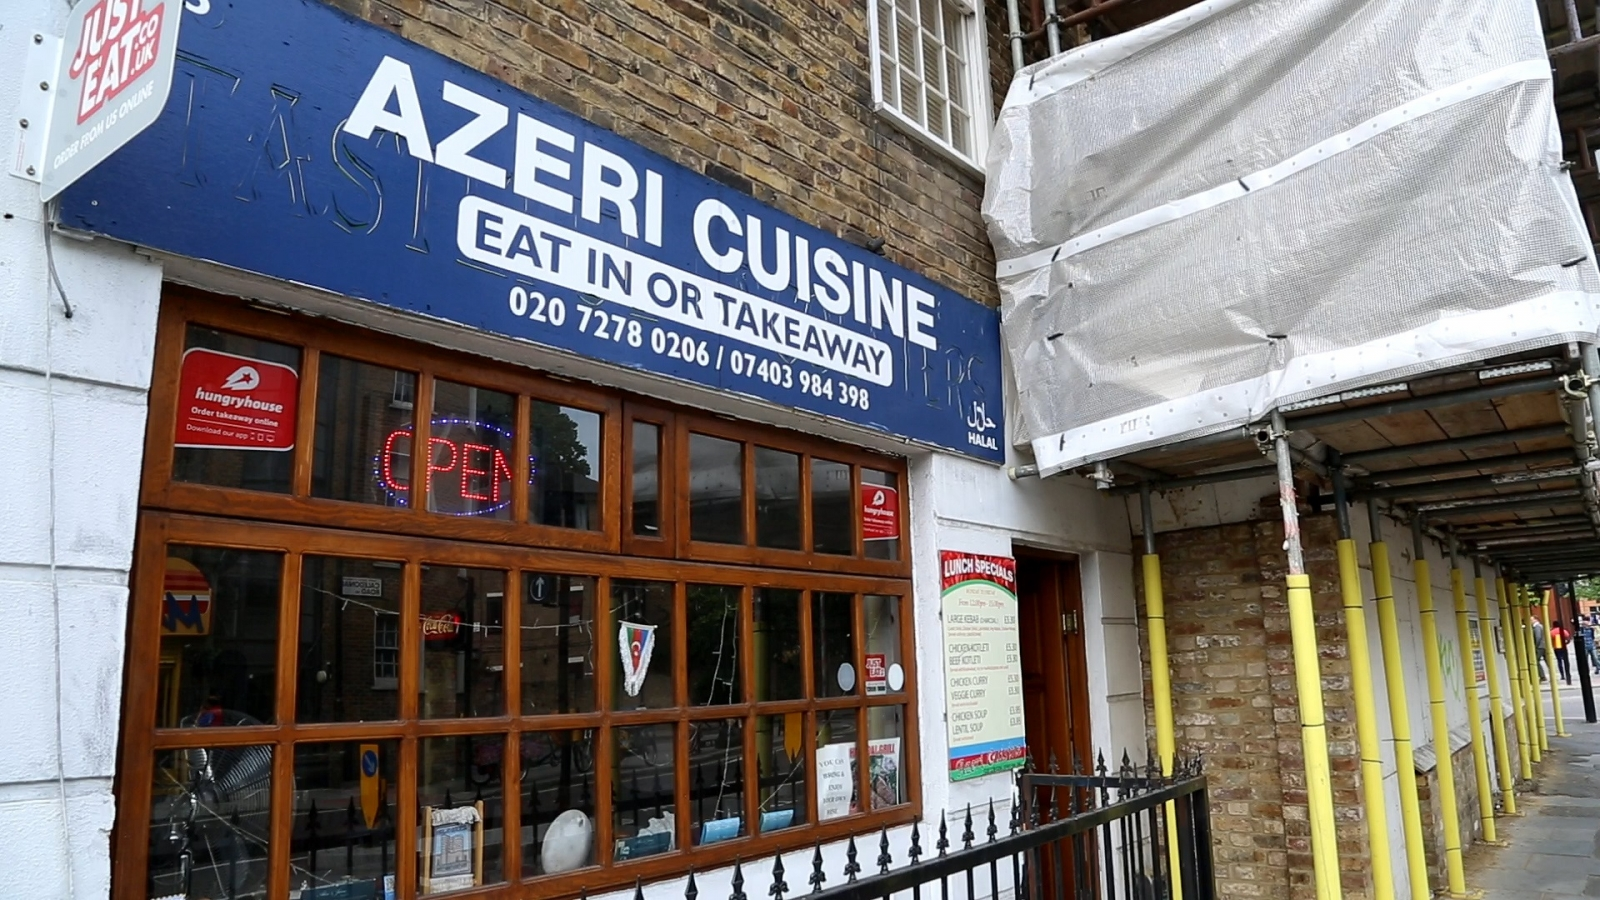 Azeri Cuisine Caledonian Road London